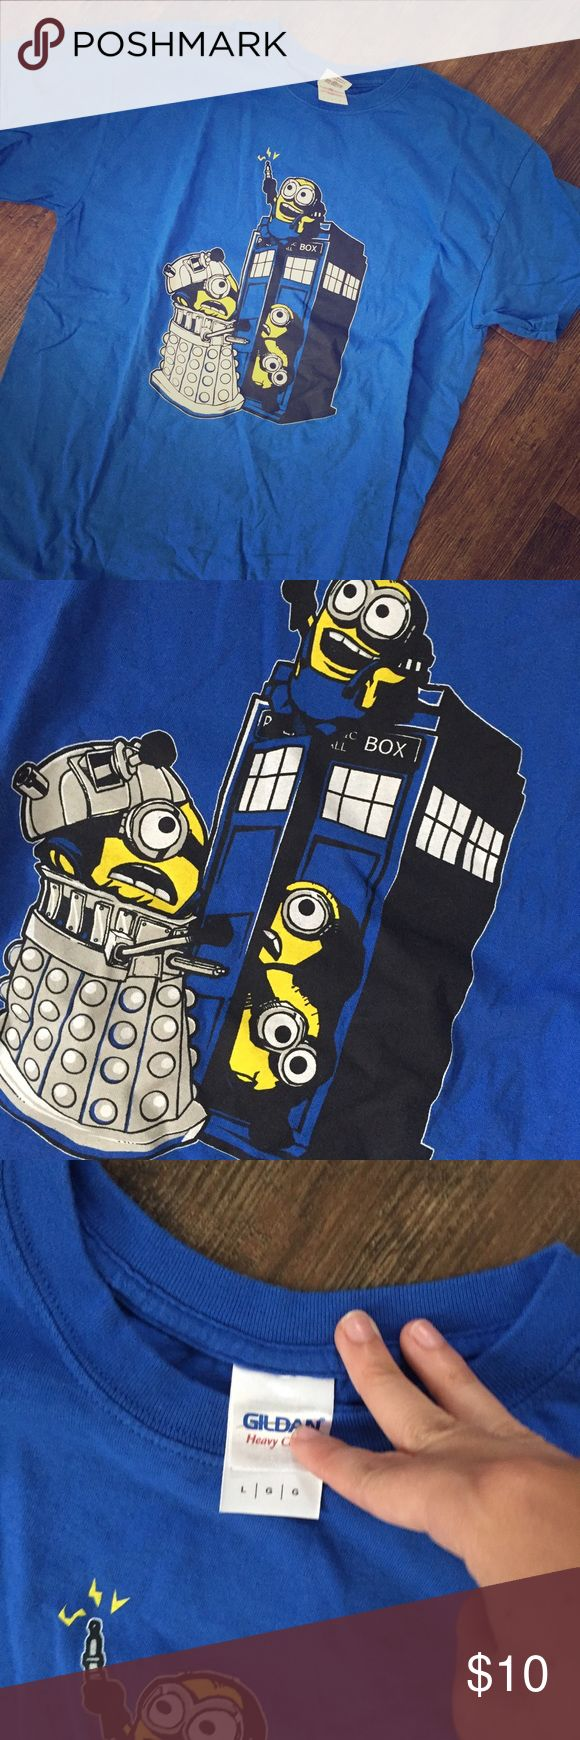 Minions doctor who shirt This shirt was never worn but is wrinkled from being folded away! I can wash it before shipping! It's super cute and great for anyone who's a fan of Doctor who!! Great condition! Please feel free to ask any questions or leave a comment!! Make an offer! 😊😊 Hot Topic Tops